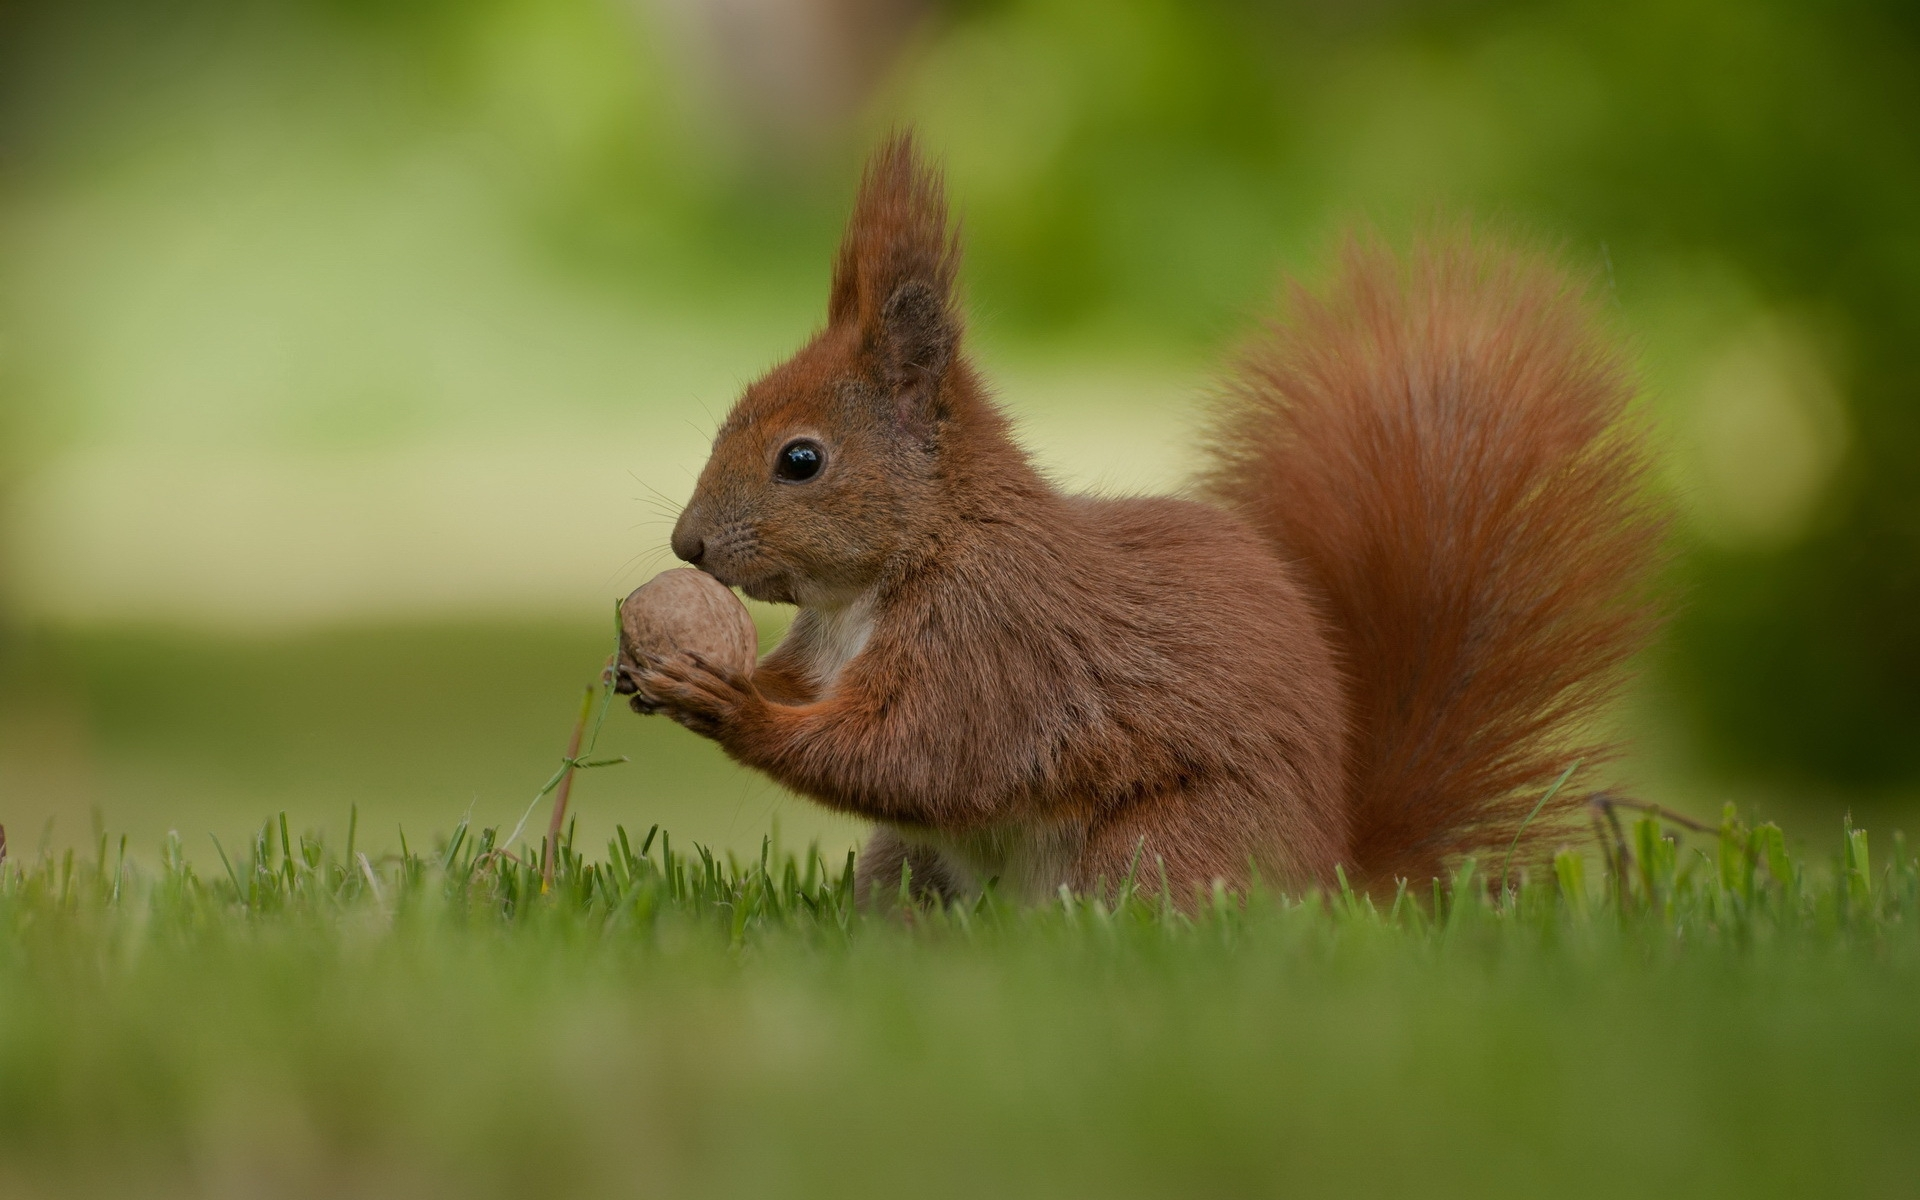 35859 download wallpaper Animals, Squirrel screensavers and pictures for free